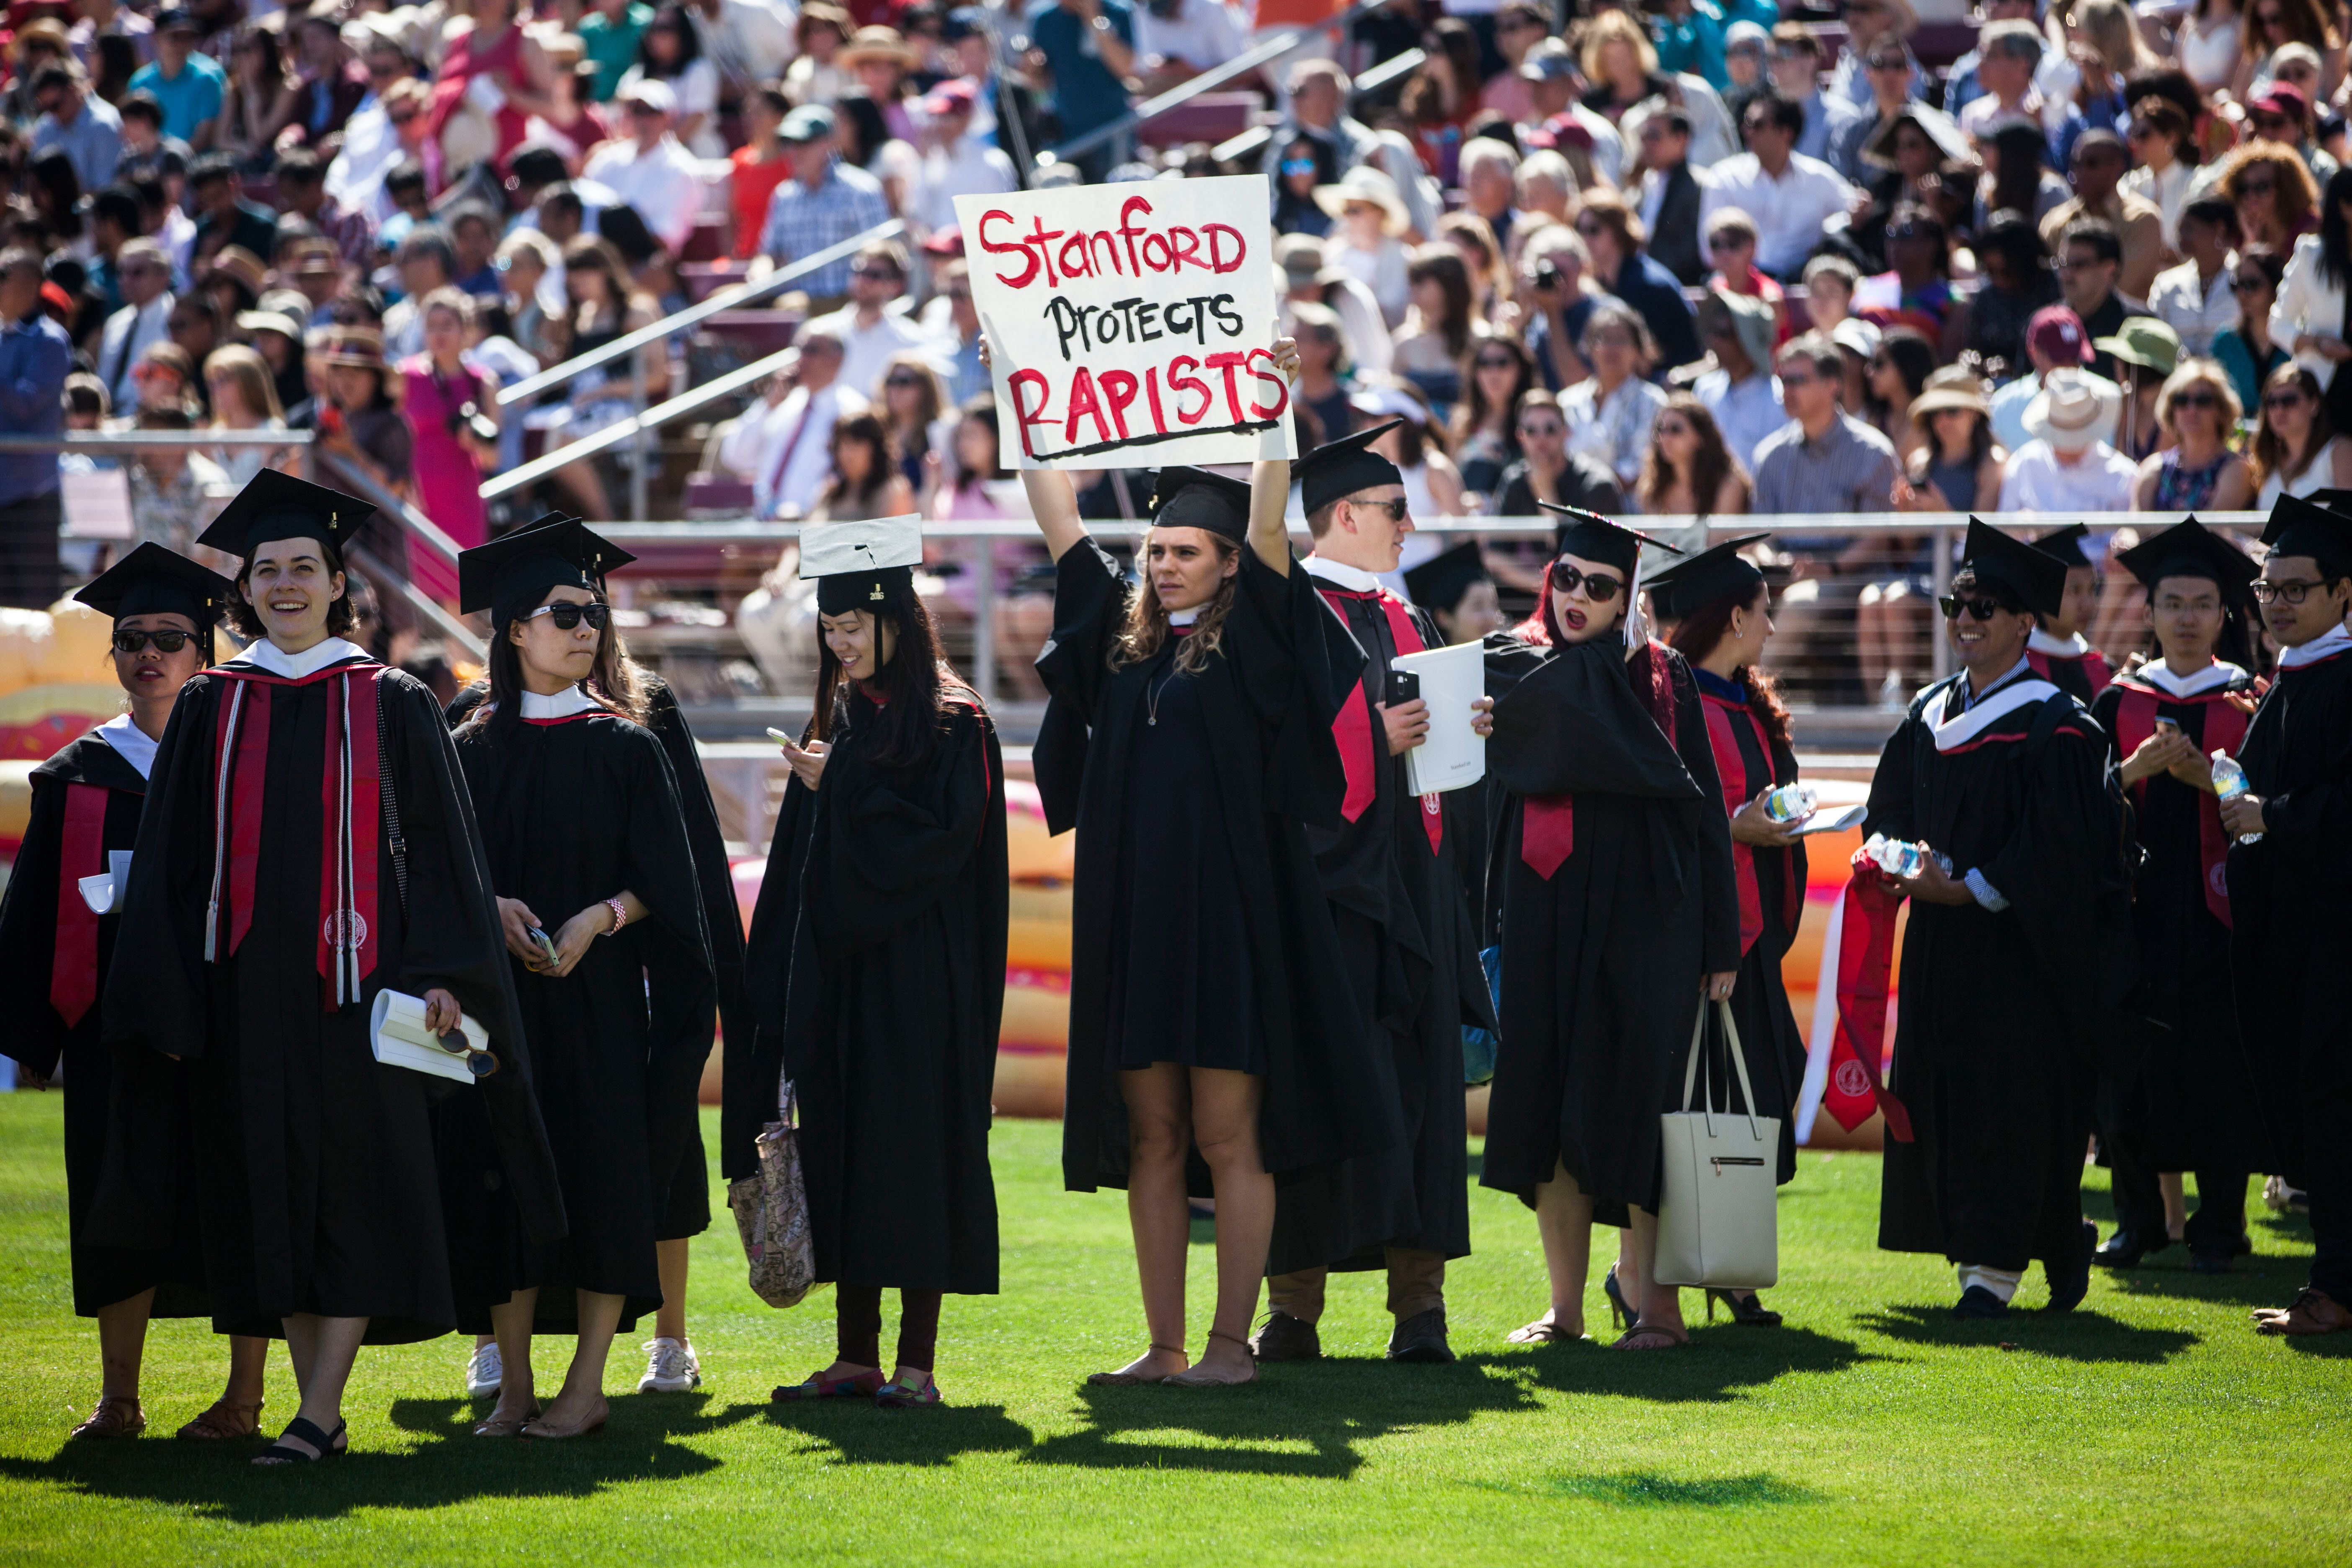 A Stanford student during the university's commencement ceremony on June 12, 2016, after the Brock Turner rape case. An